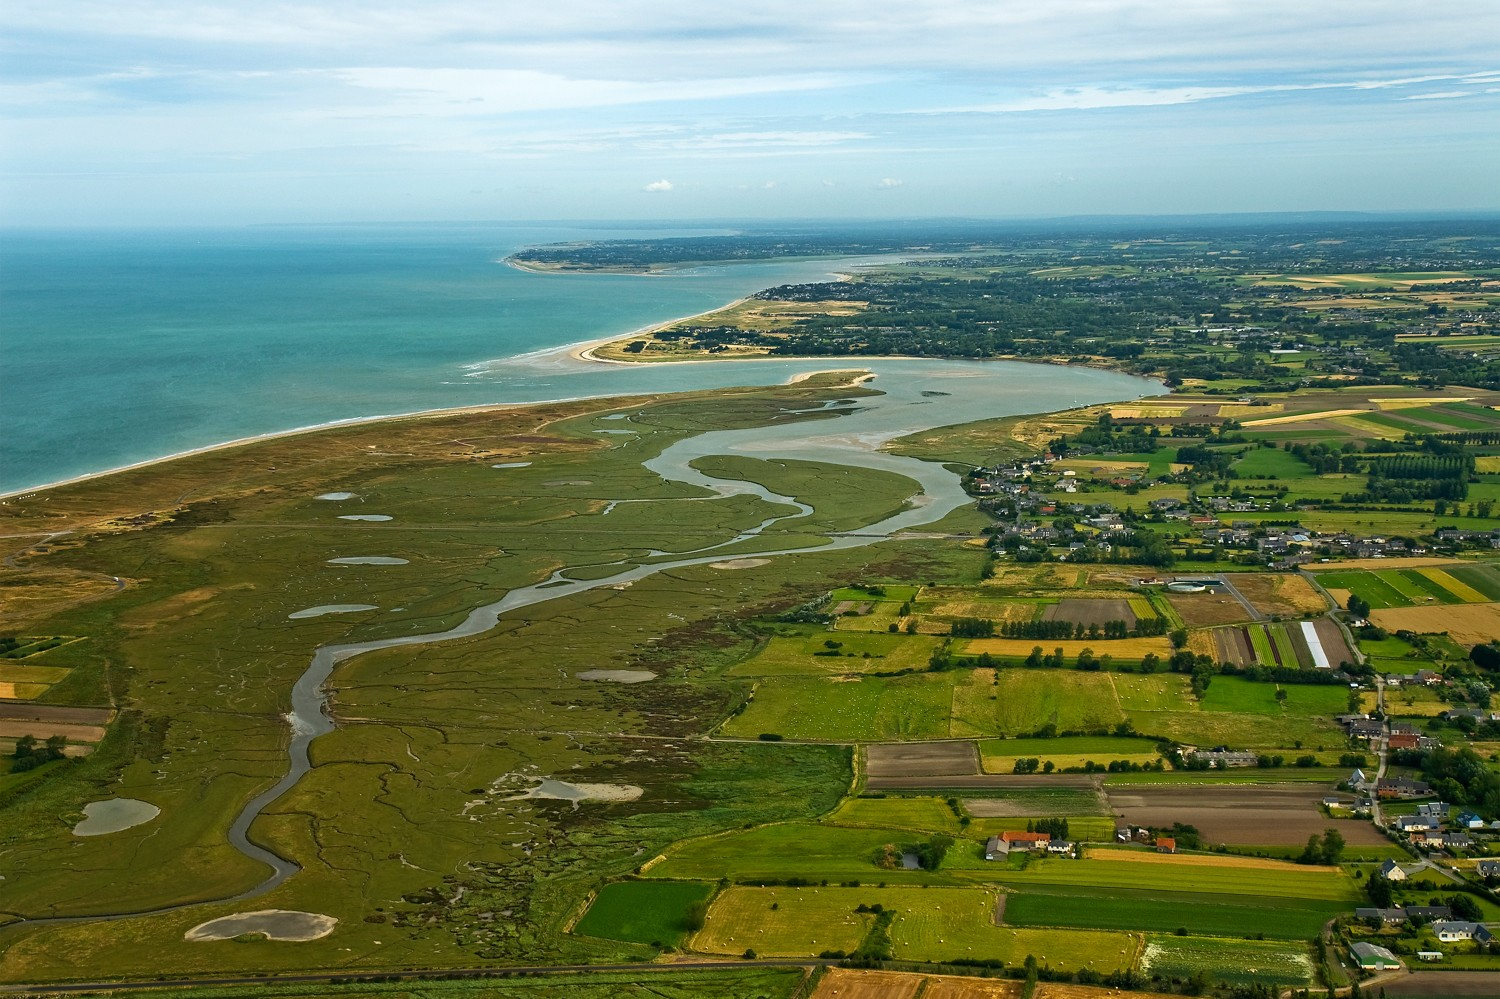 Vacation idea in France : the Coast of the havens of the Cotentin peninsula and its natural spaces